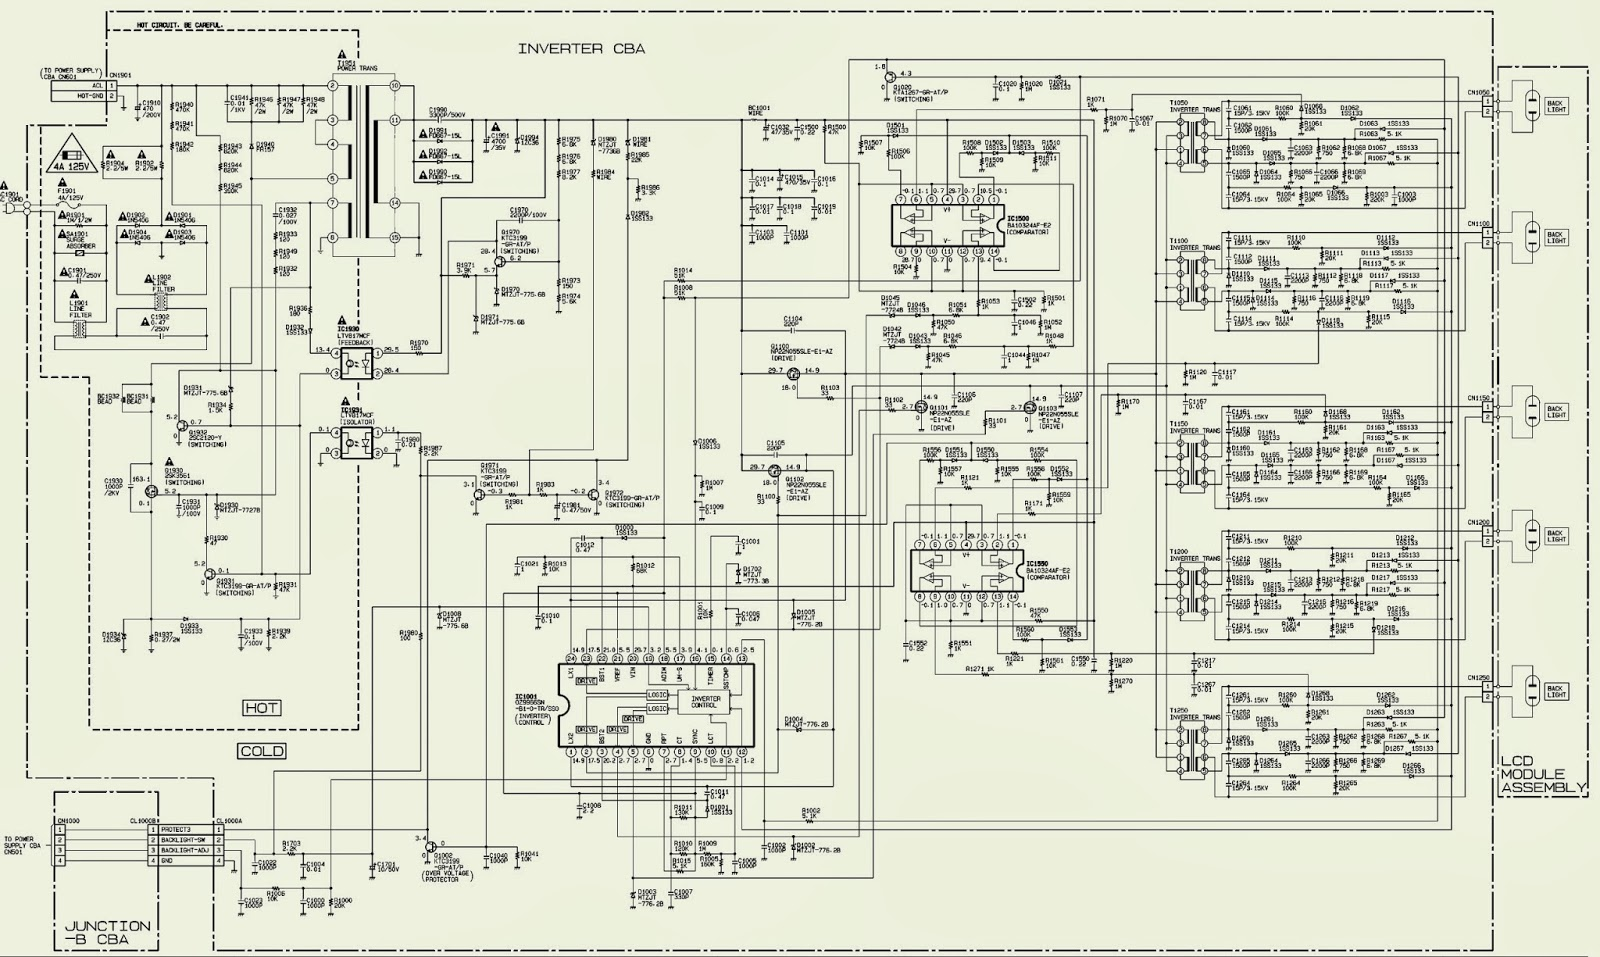 Emerson Ups Circuit Diagram Free Wiring For You Liebert Schematics Lc320em9 Power Supply Back Light Inverter Drawing Electrical Schematic Diagrams